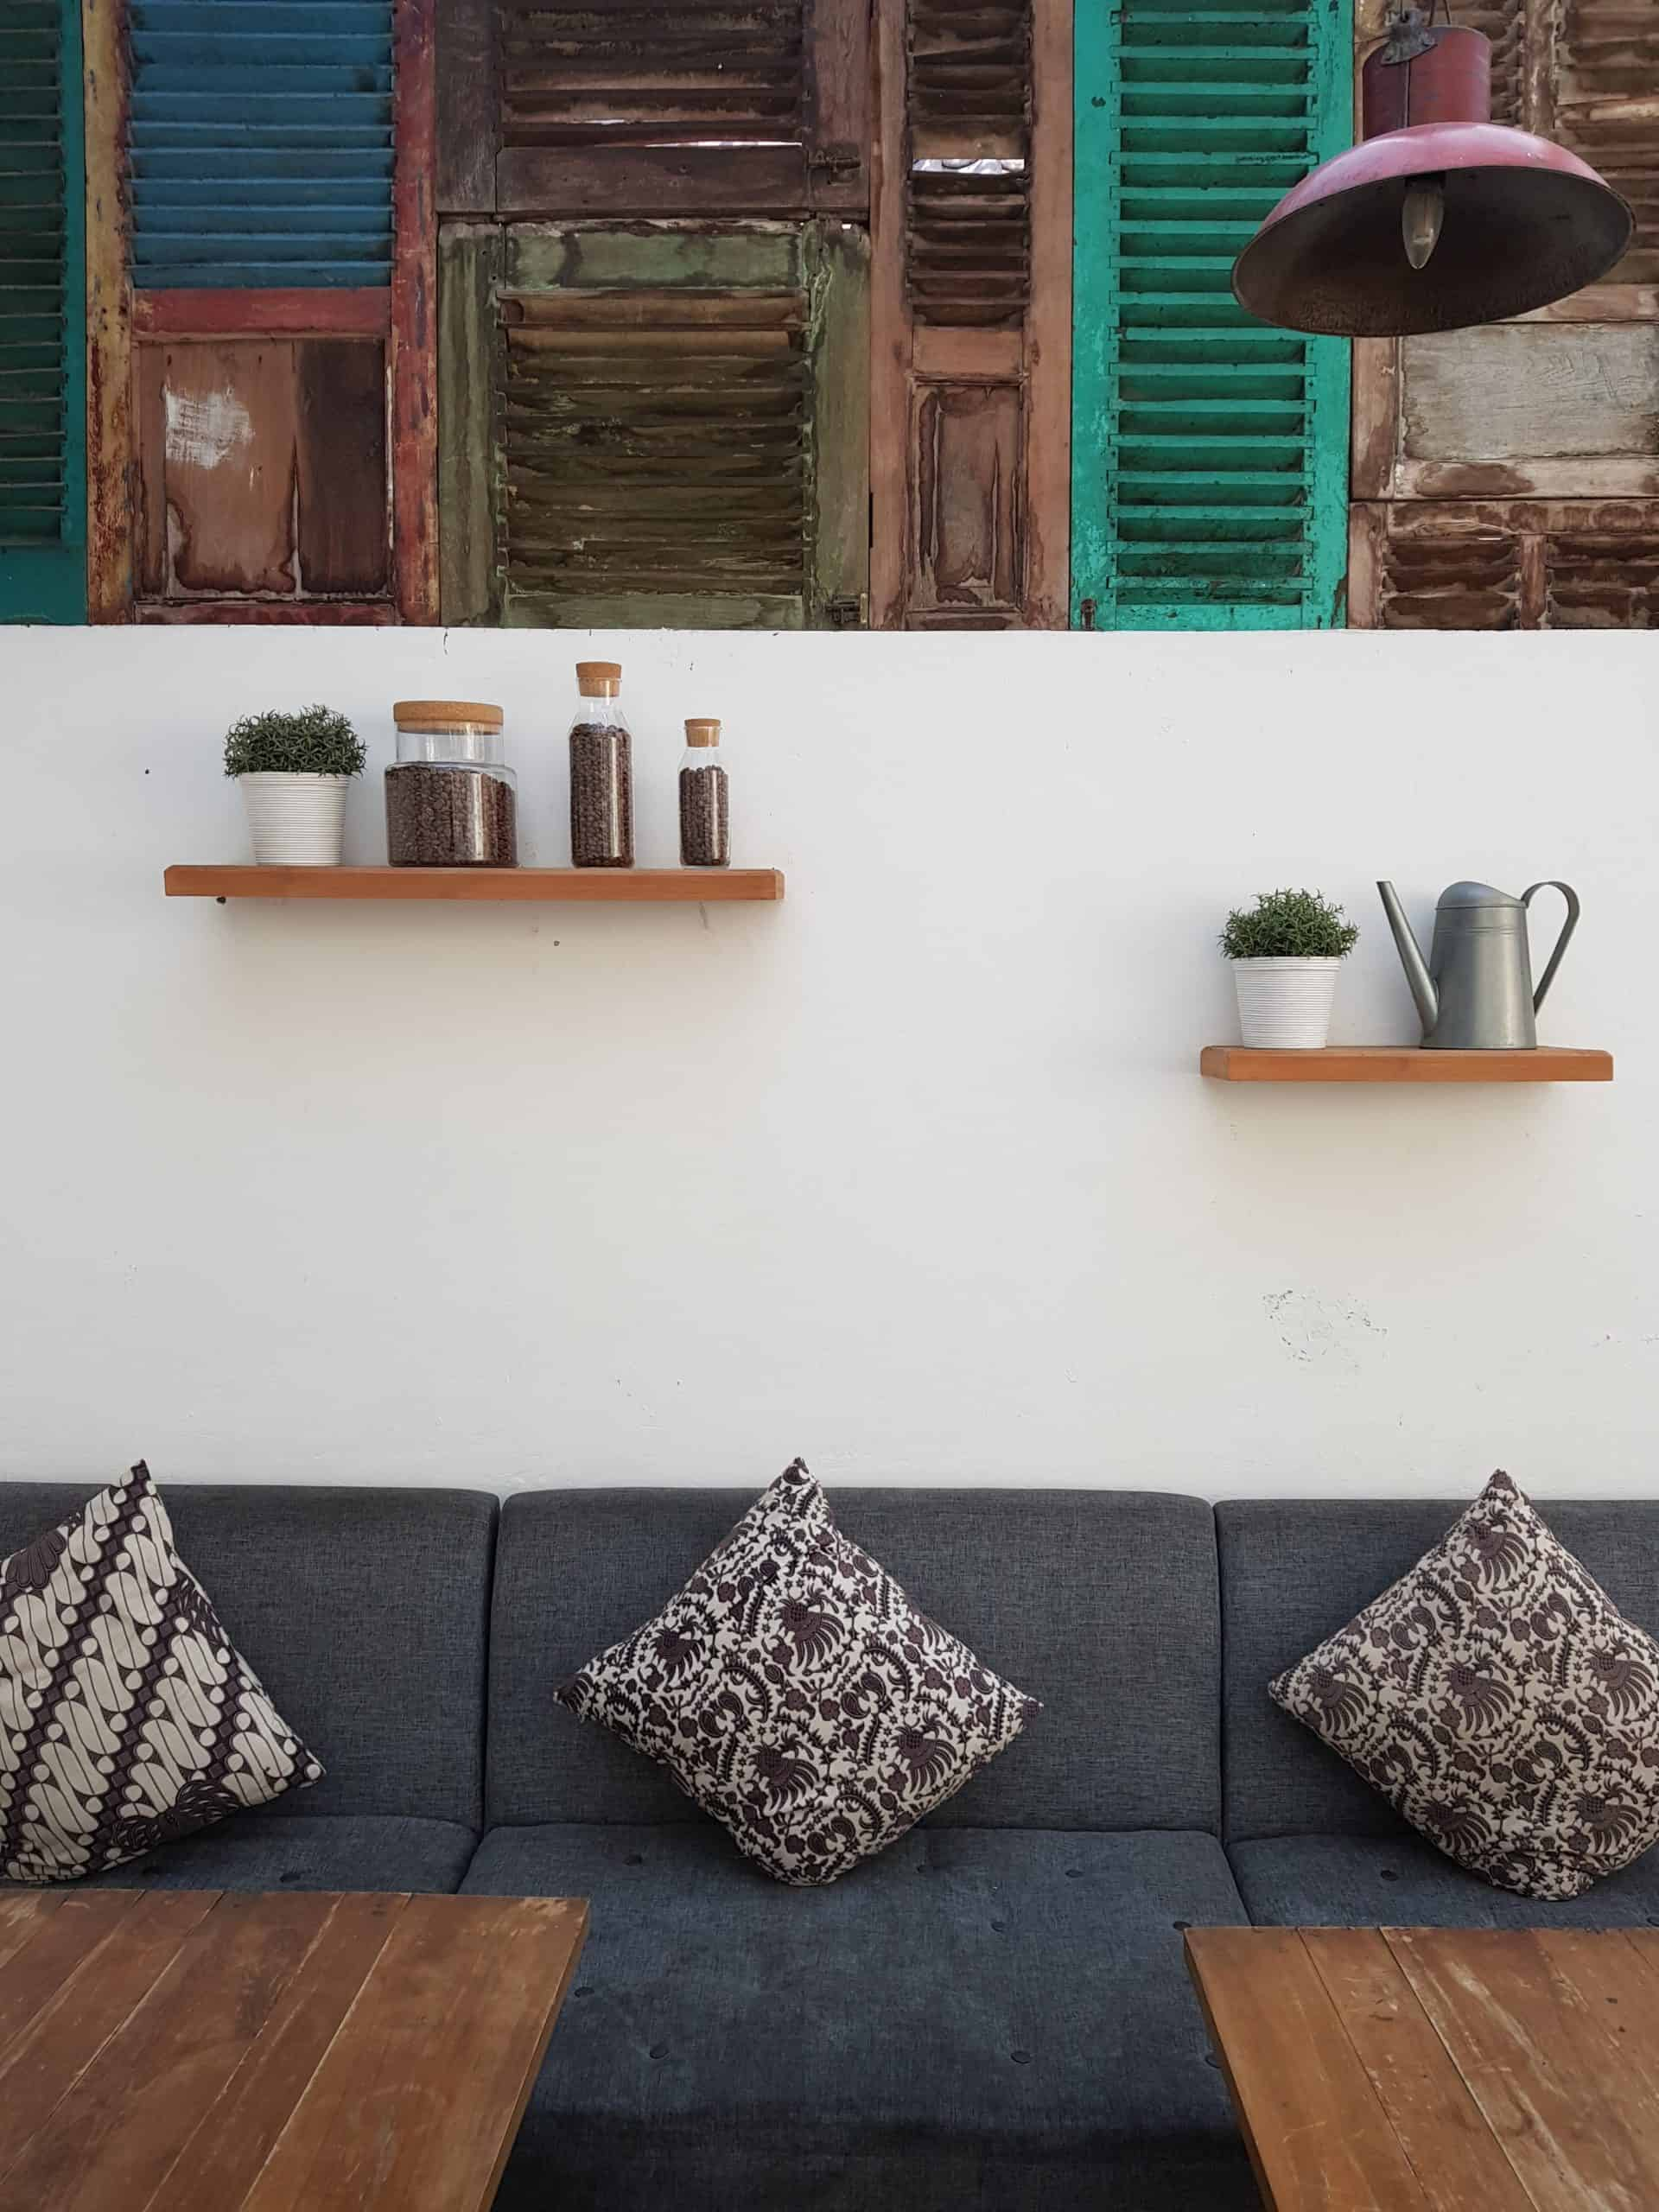 How One Can Decorate The Home With Local Design